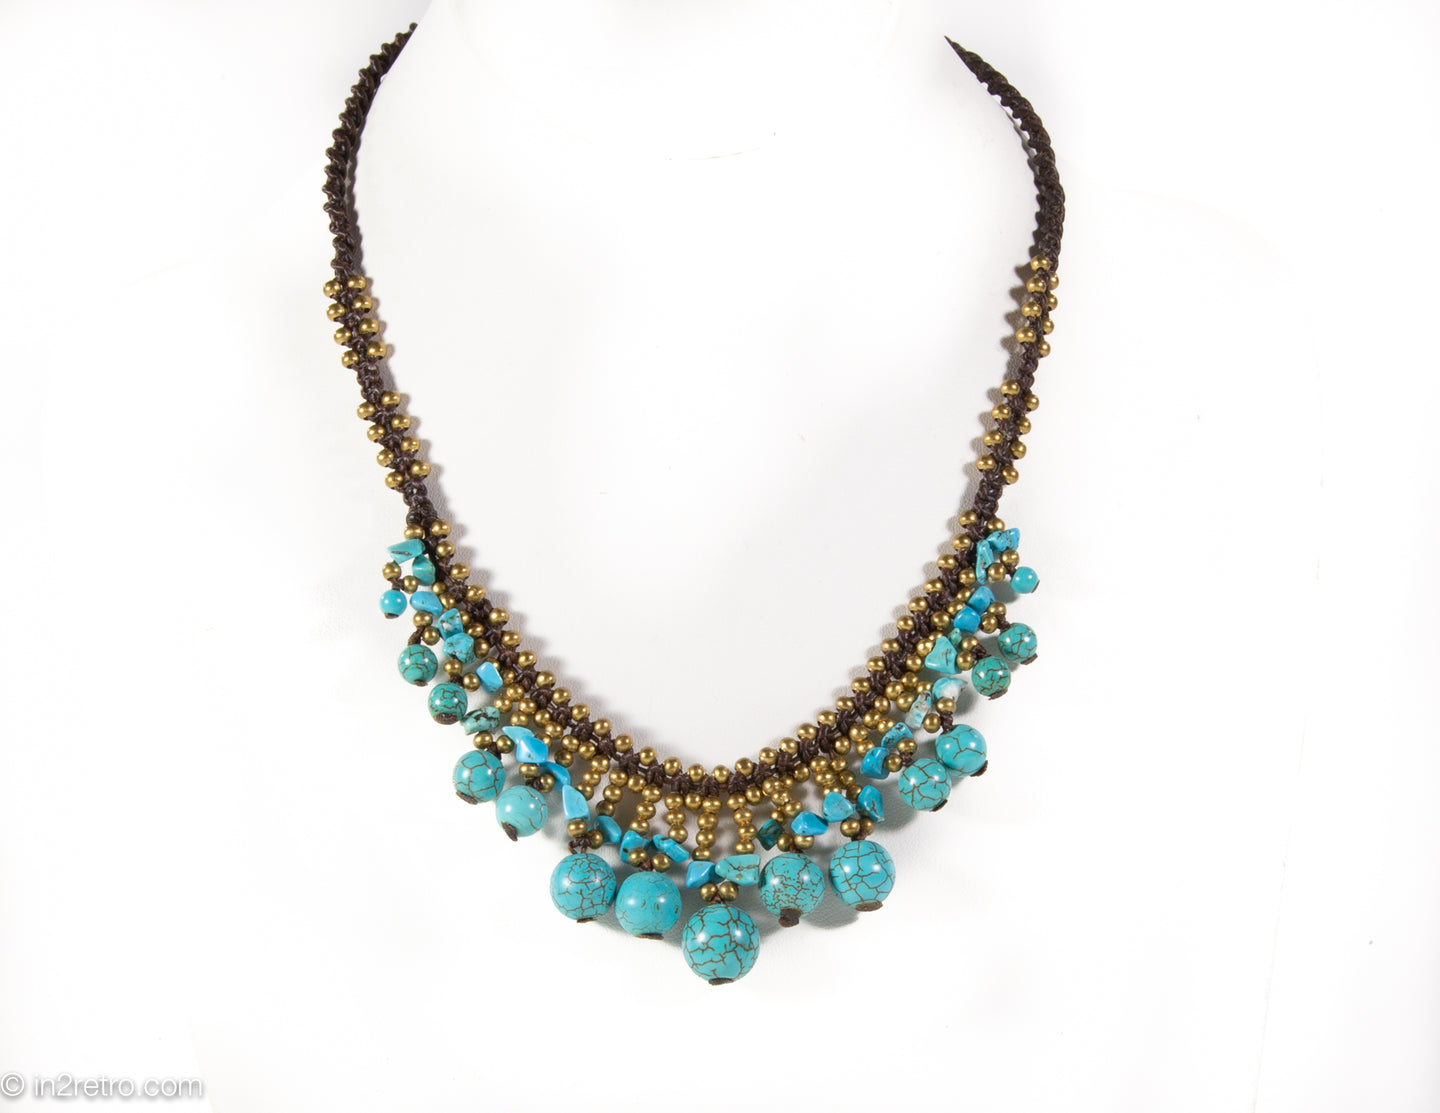 VINTAGE TURQUOISE BEADS/GOLD BALLS NECKLACE